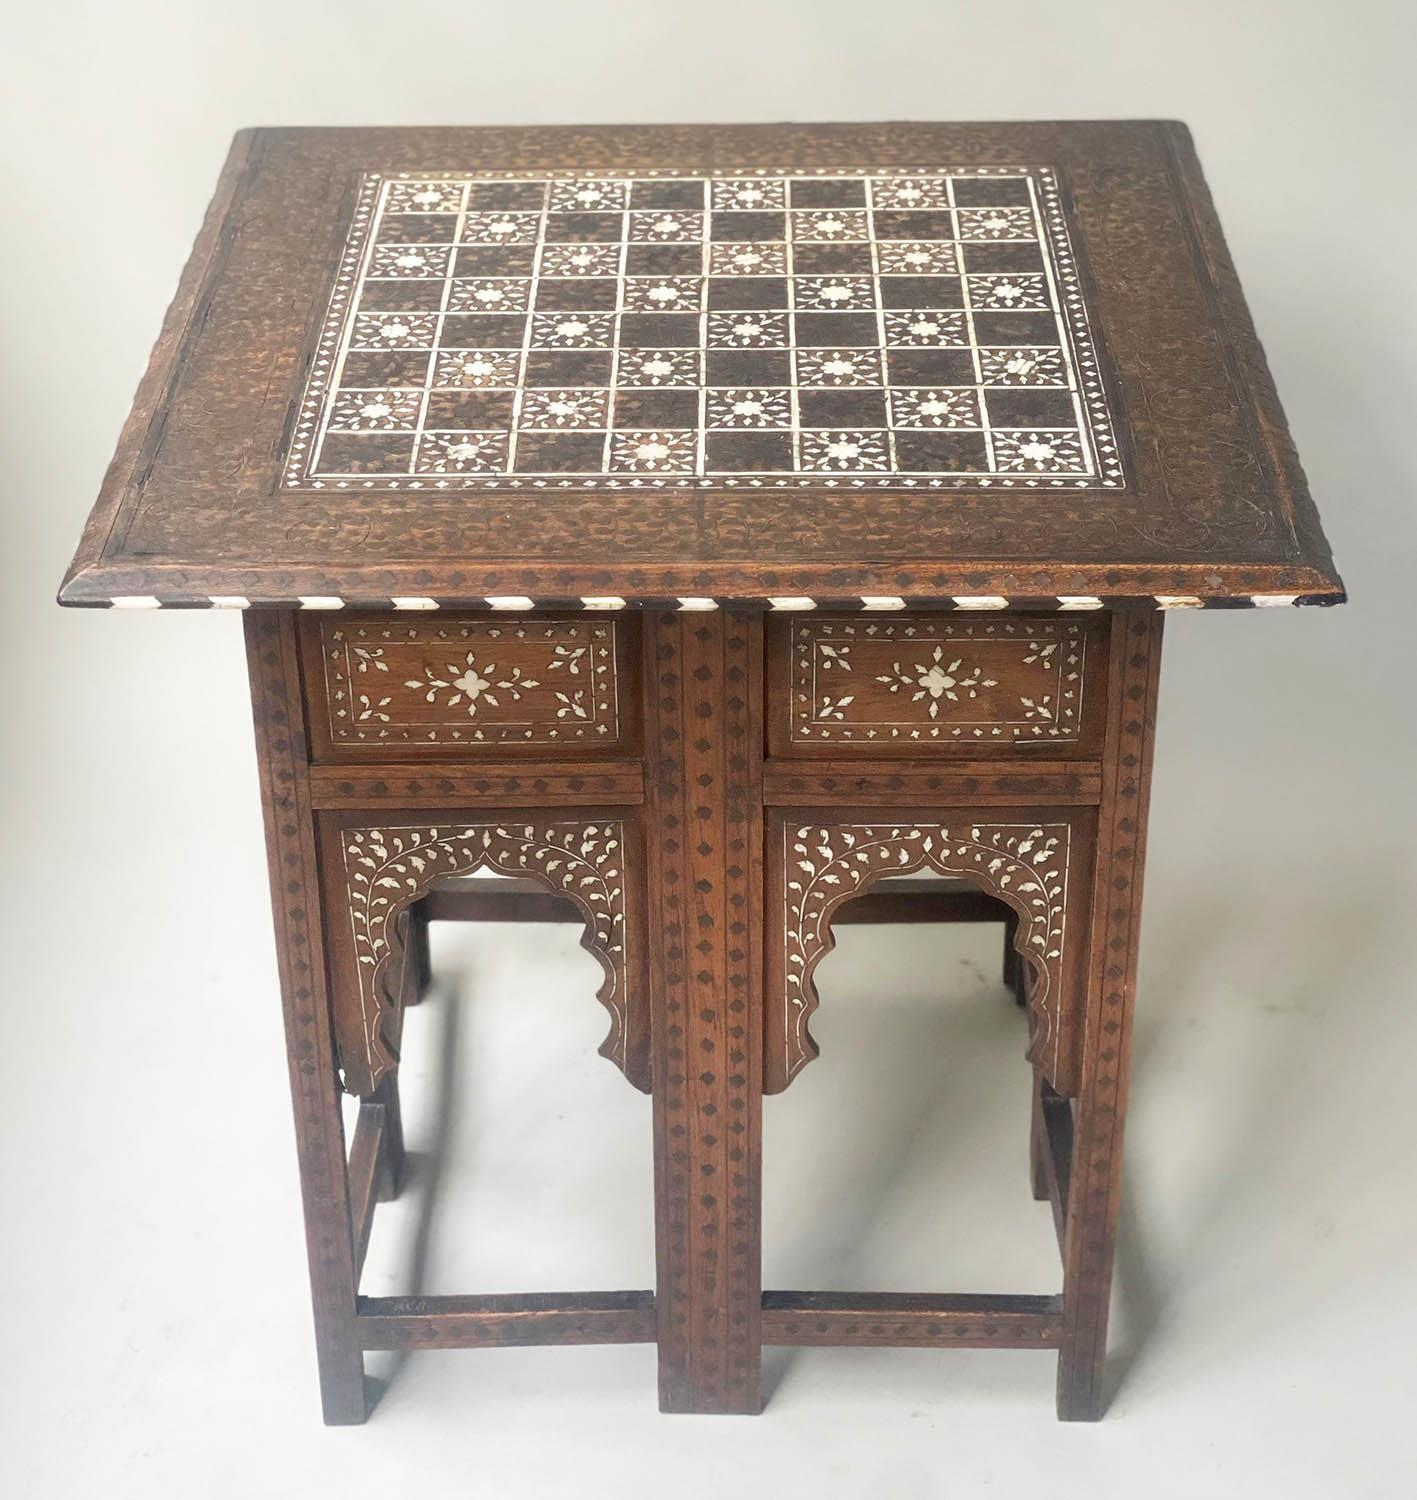 LAMP TABLE, Early 20th century Syrian square hardwood and ebony inlaid with conforming arched